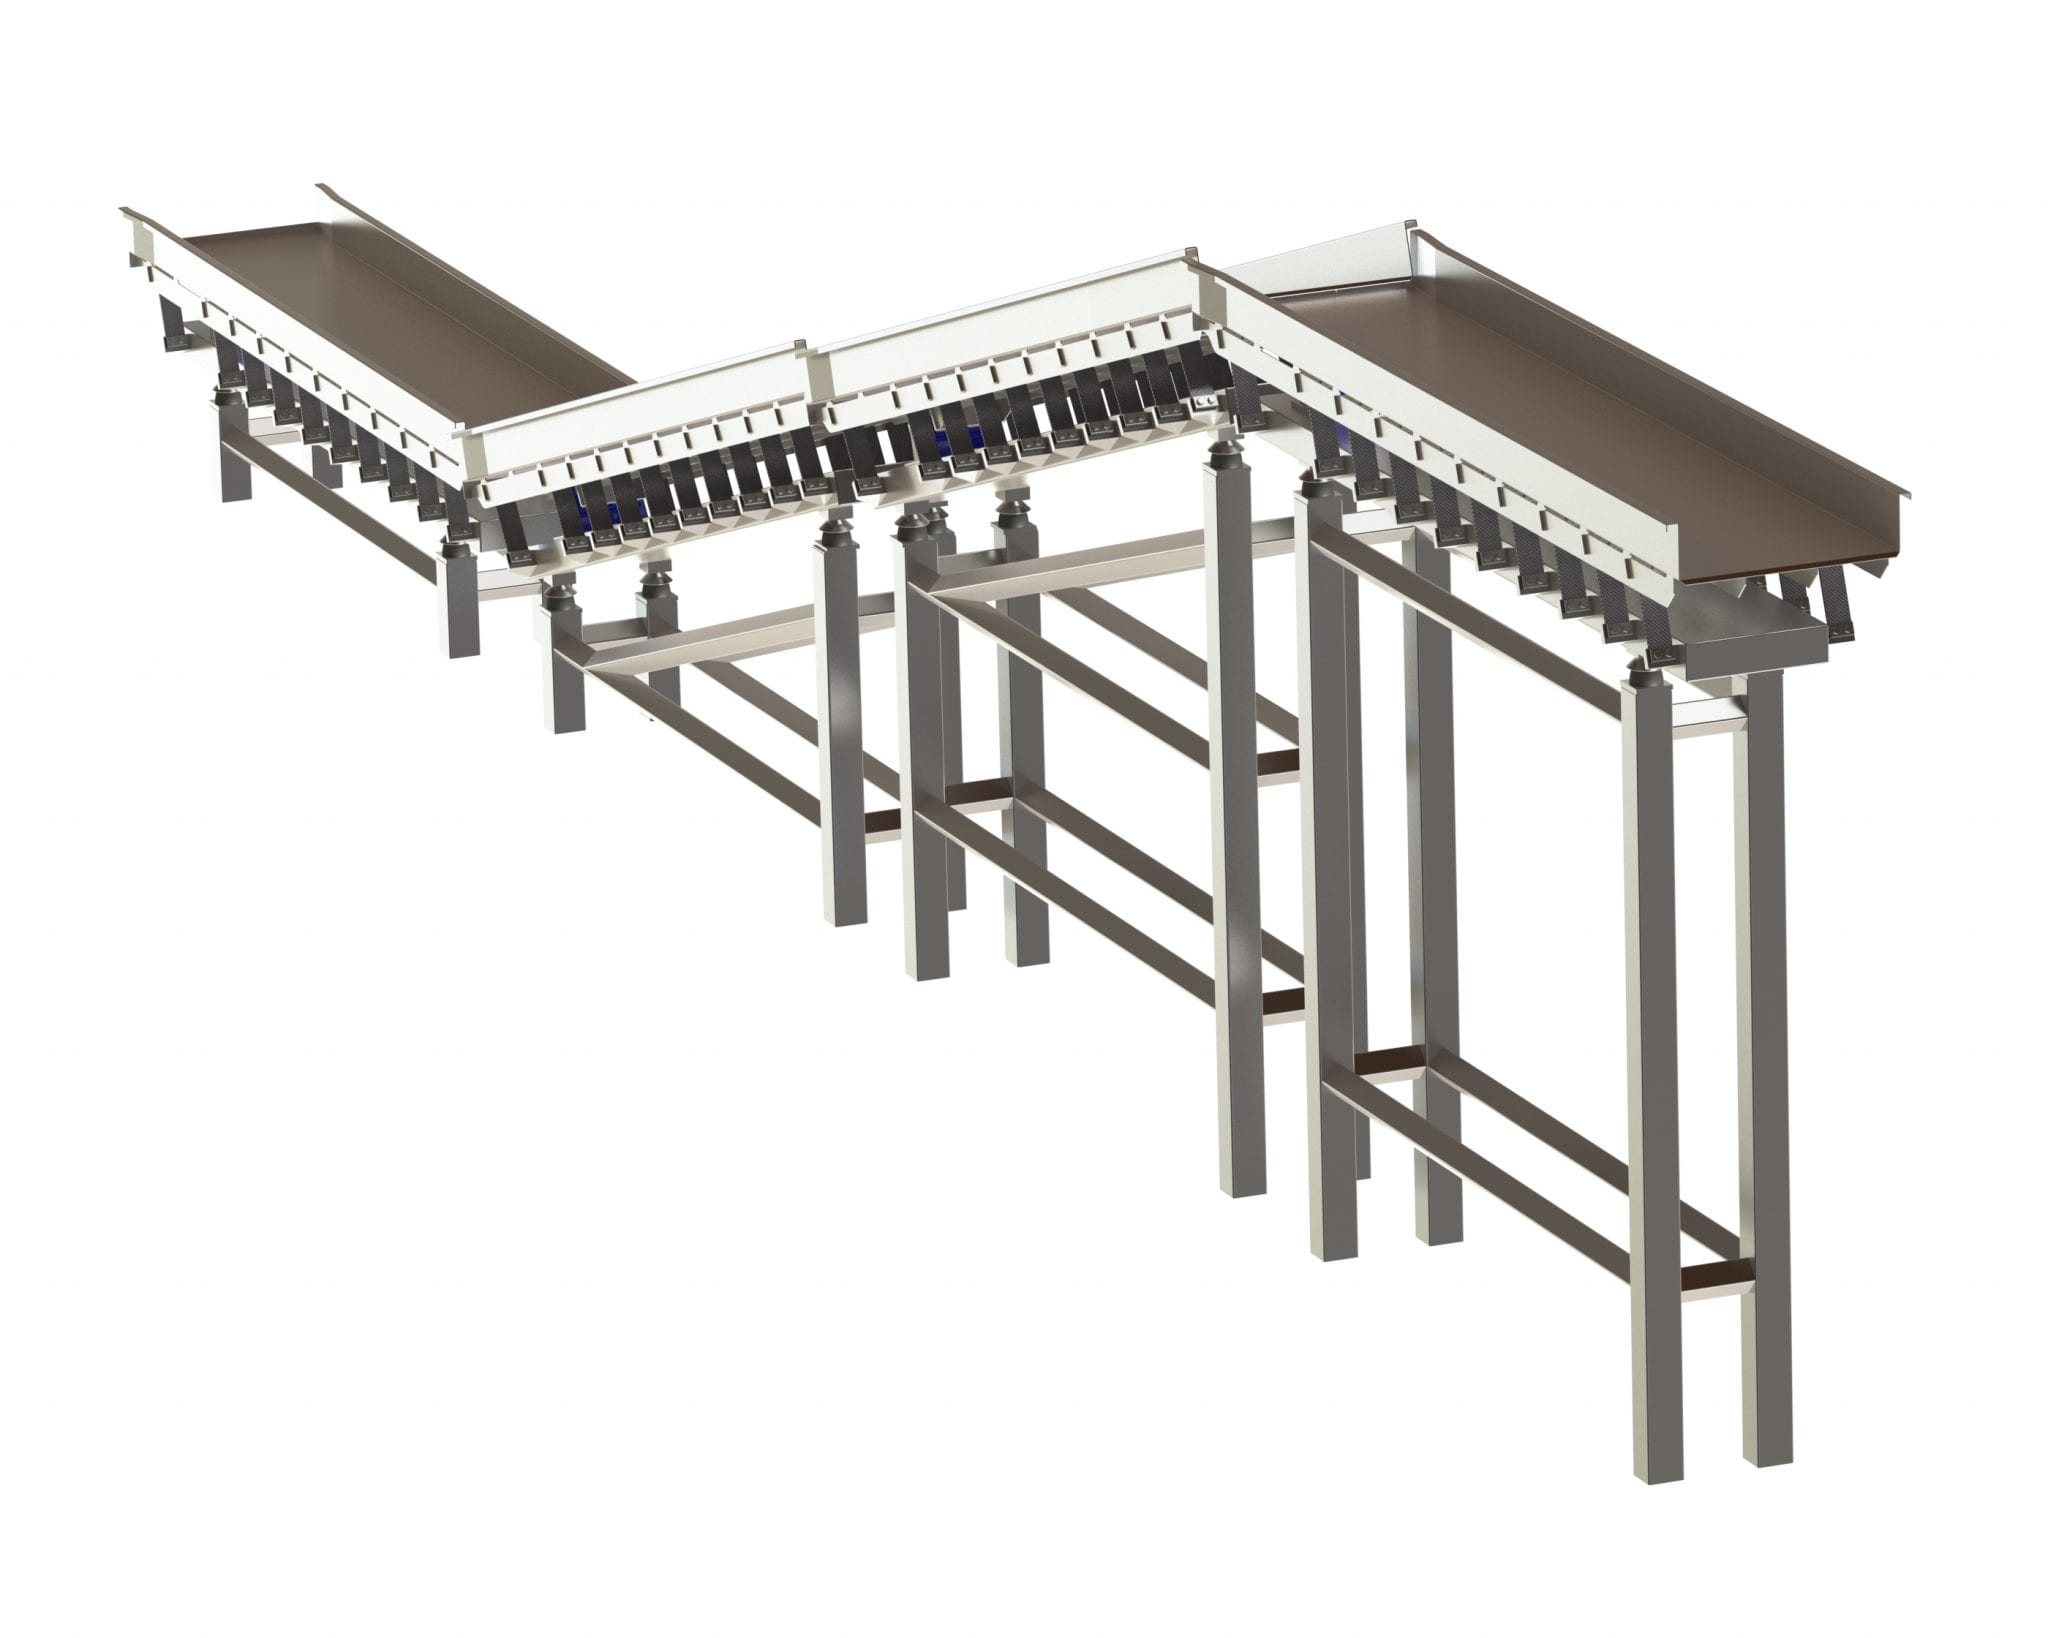 Hygienic Incline Conveyors - Cox & Plant